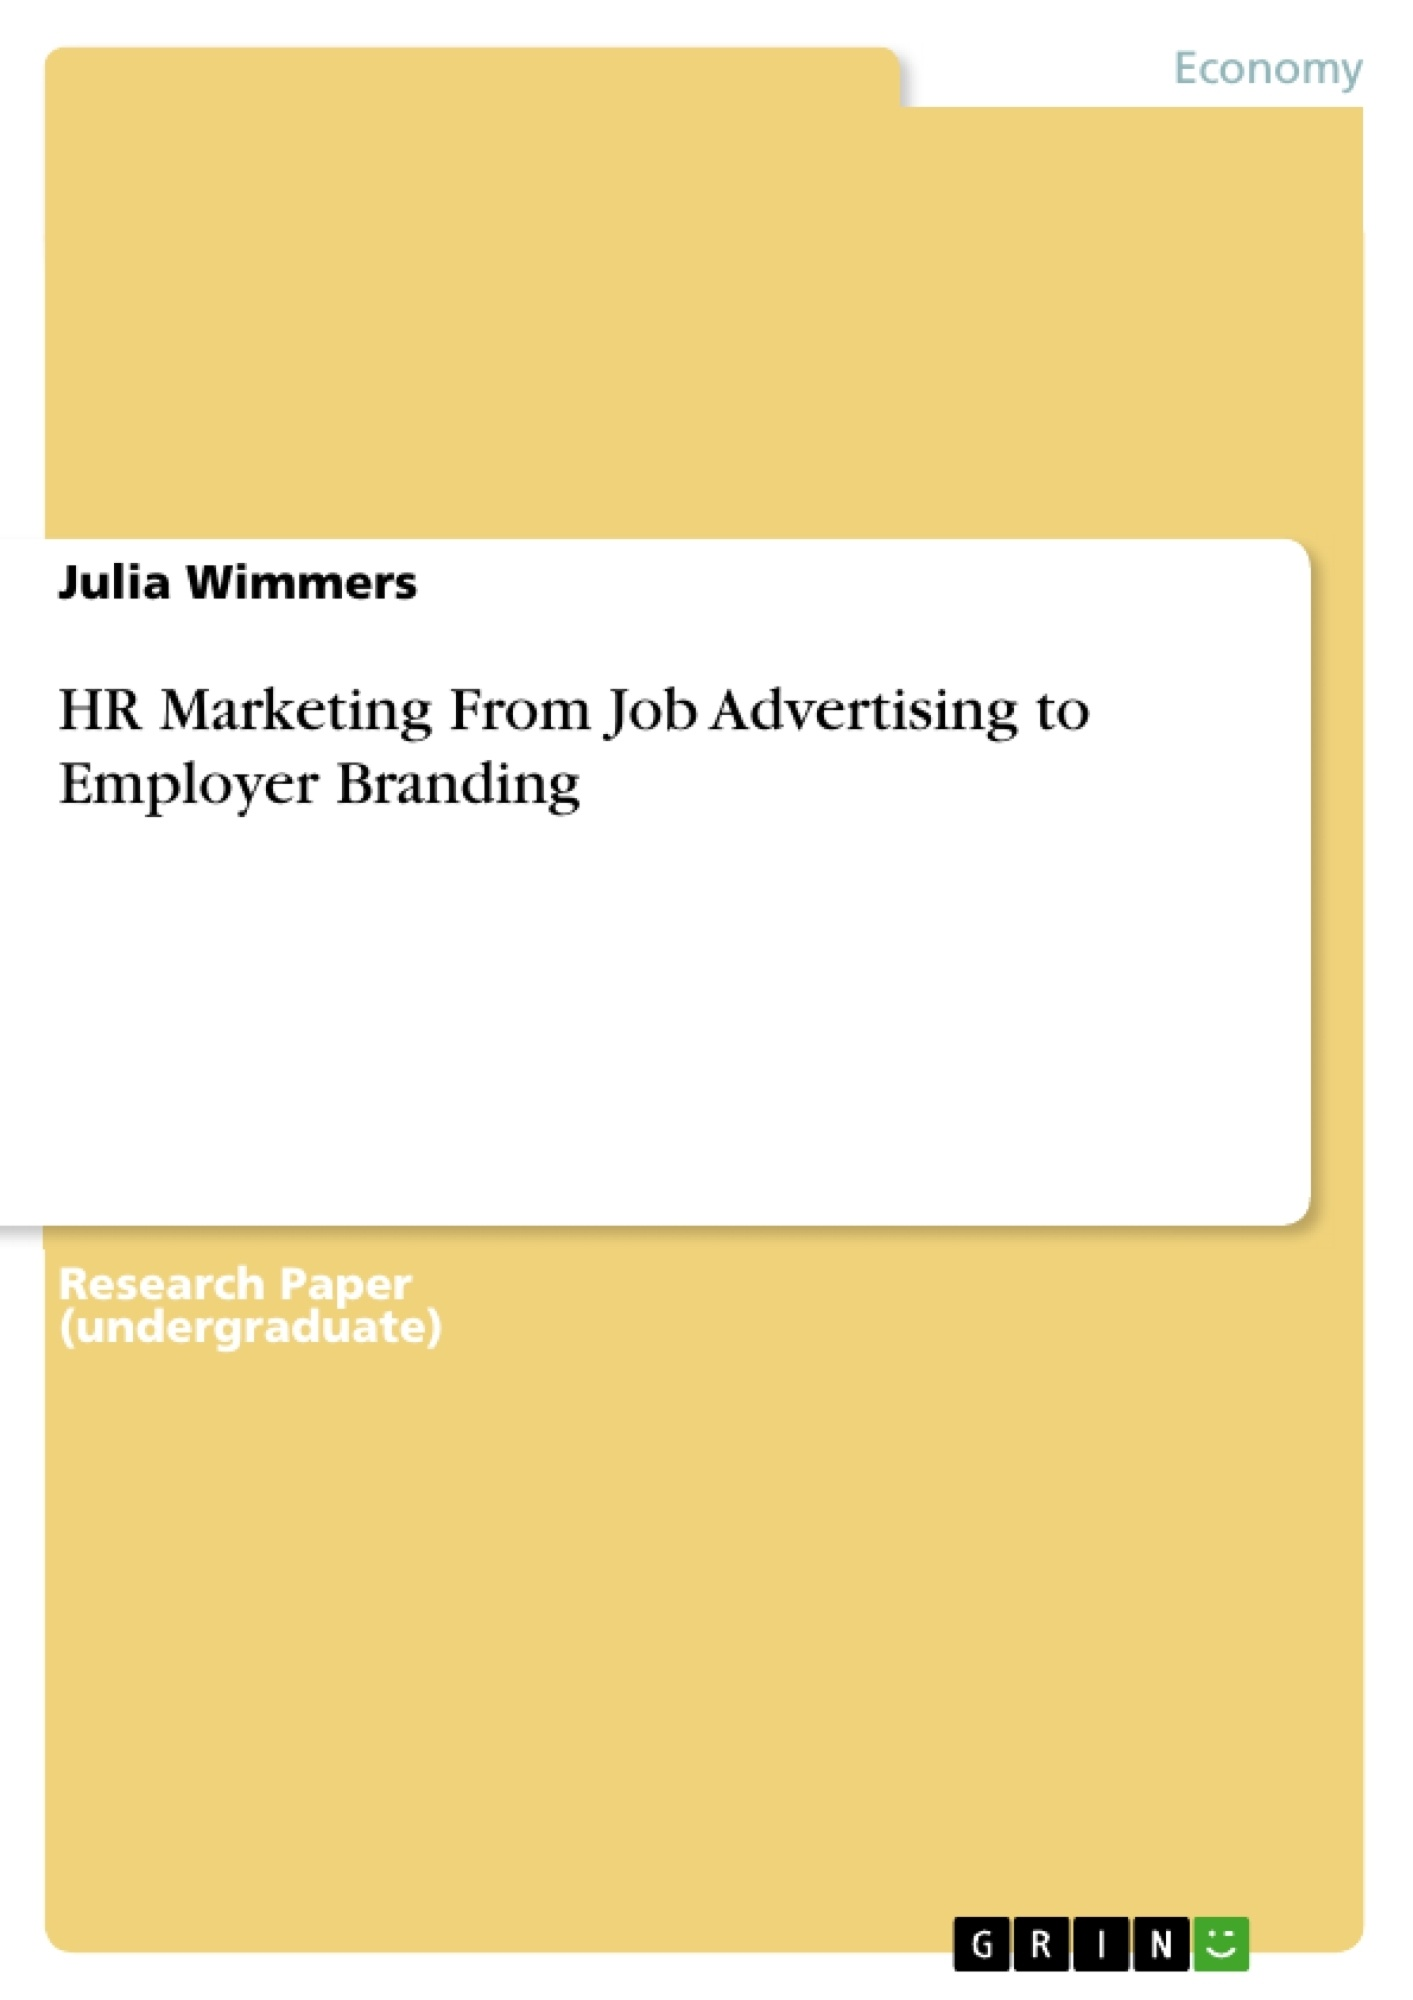 Title: HR Marketing From Job Advertising to Employer Branding